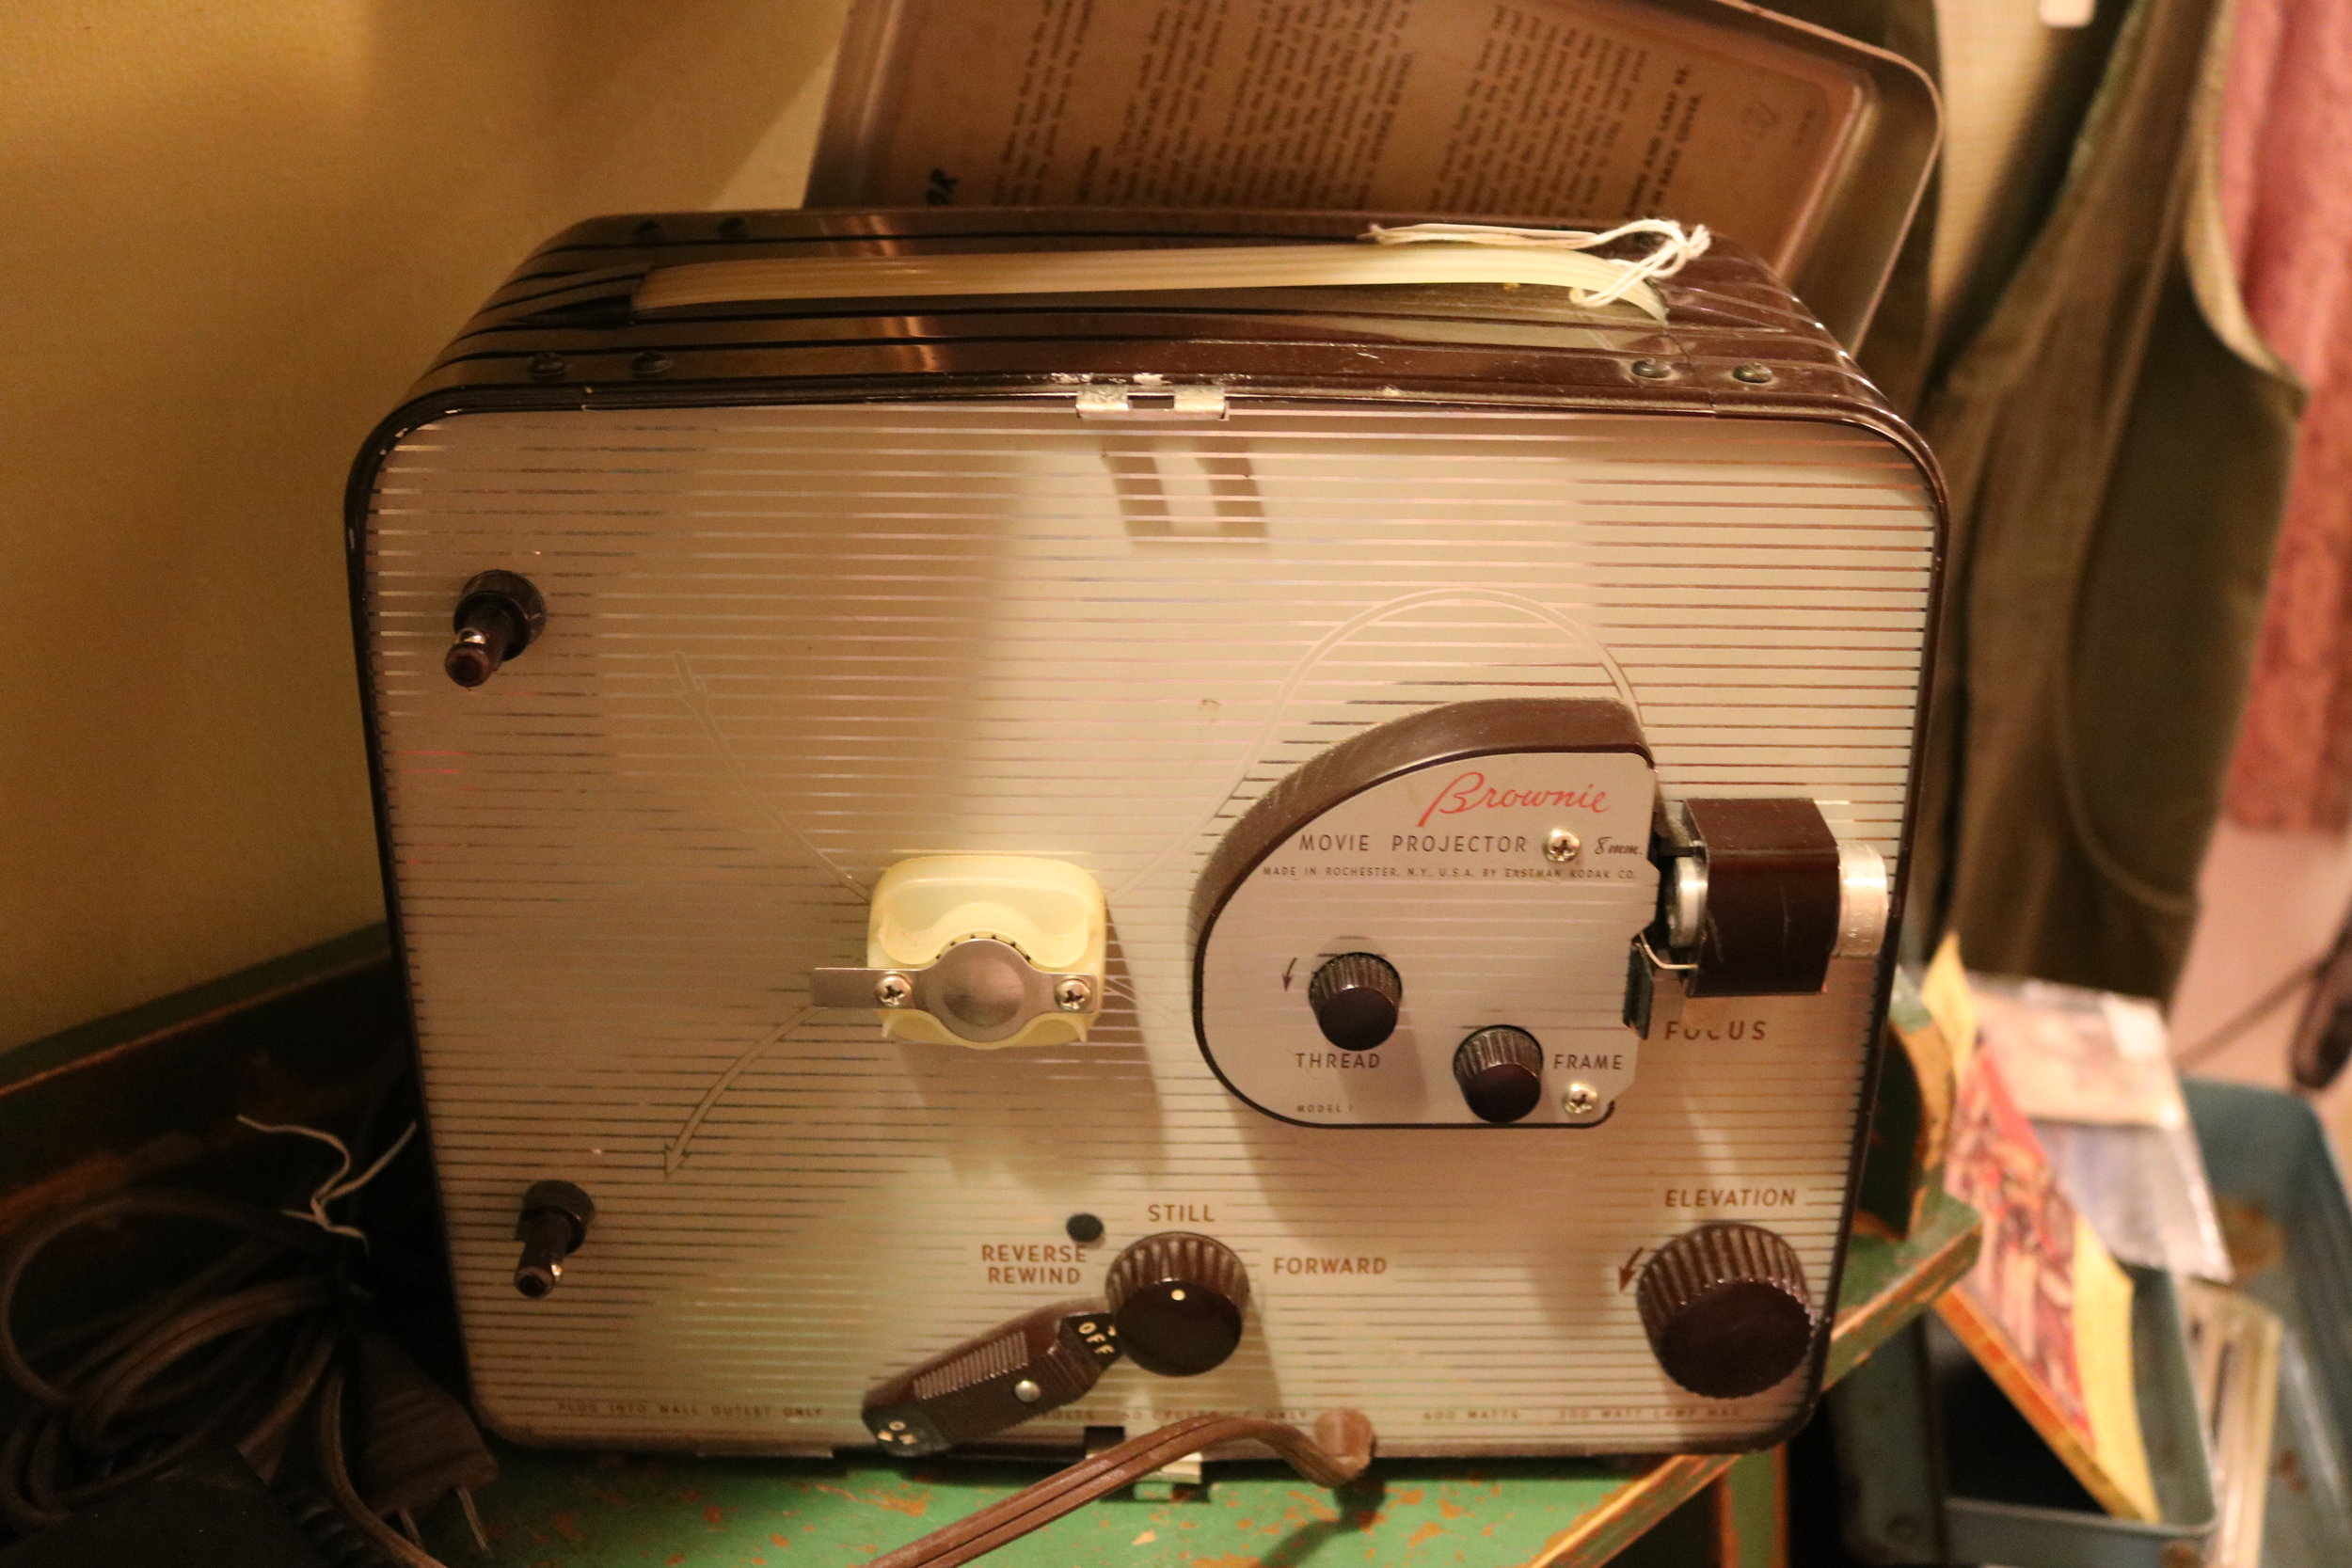 A working 1952 Kodak Brownie 8mm Movie Projector.